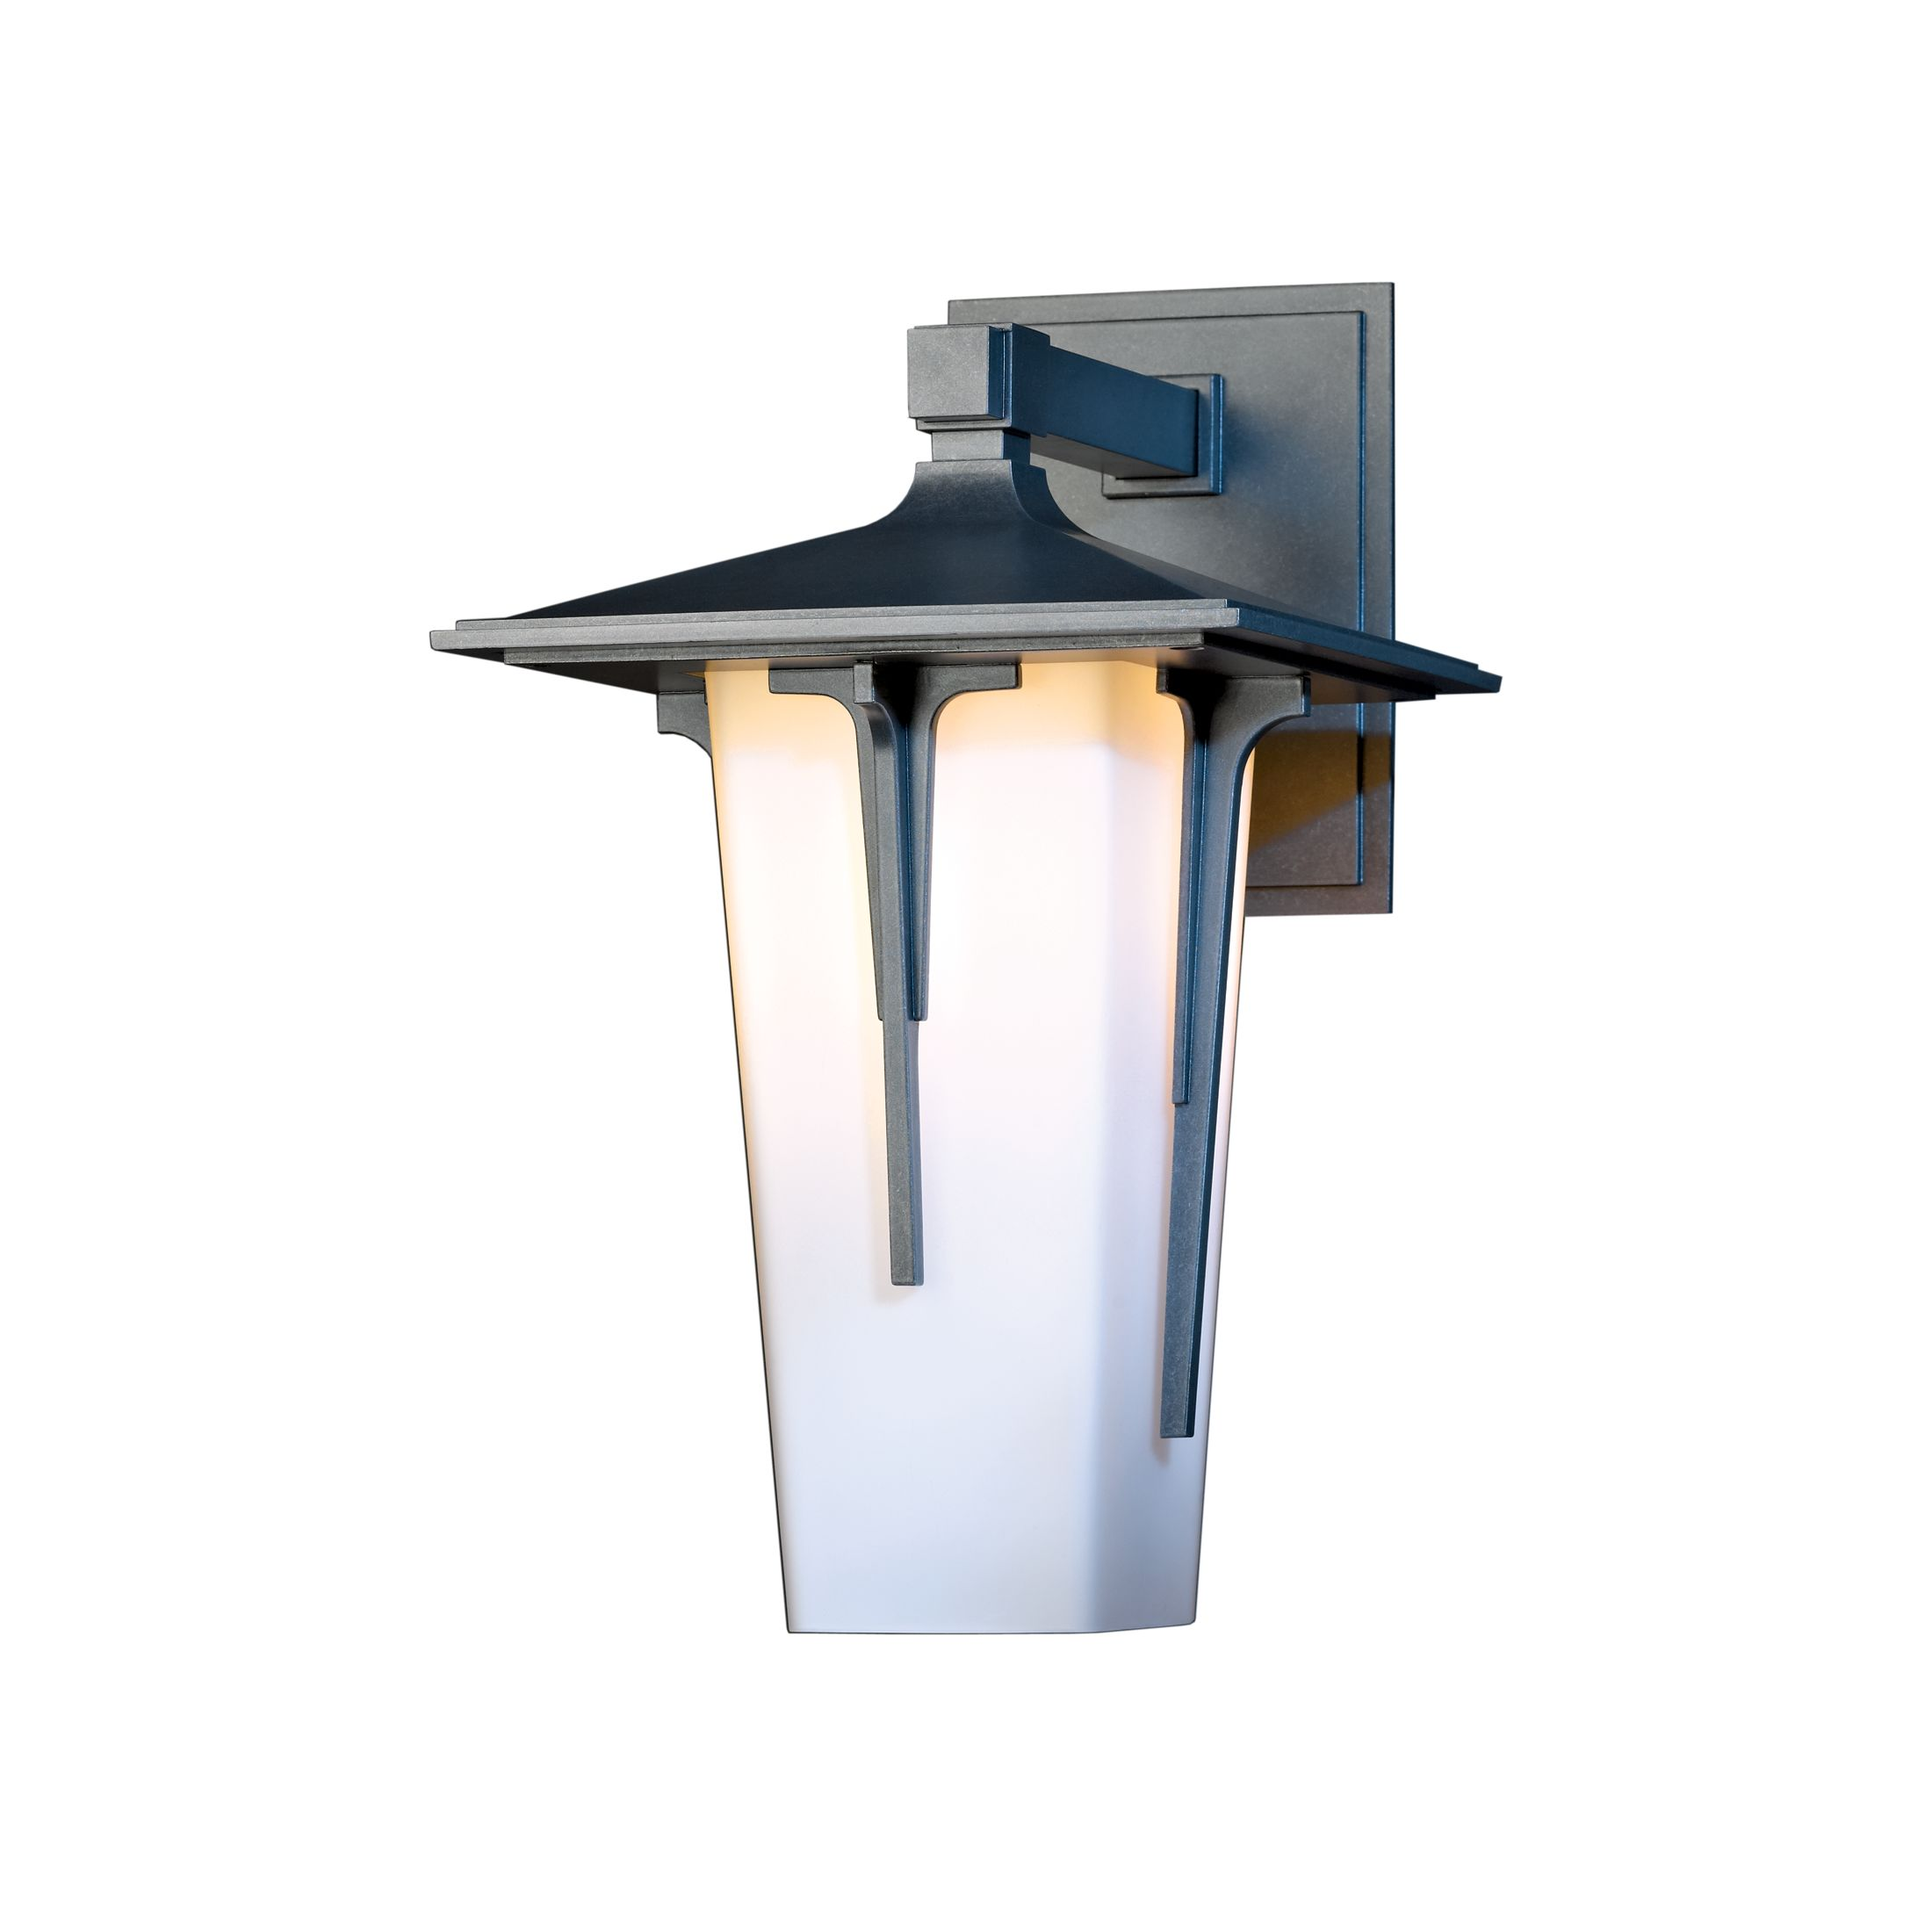 Wall Mounted Light Revit Family : Revit Wall Sconce - Revitcity Object Wall Sconce, Rutherford Sconce 3d Model Formfonts 3d Models ...